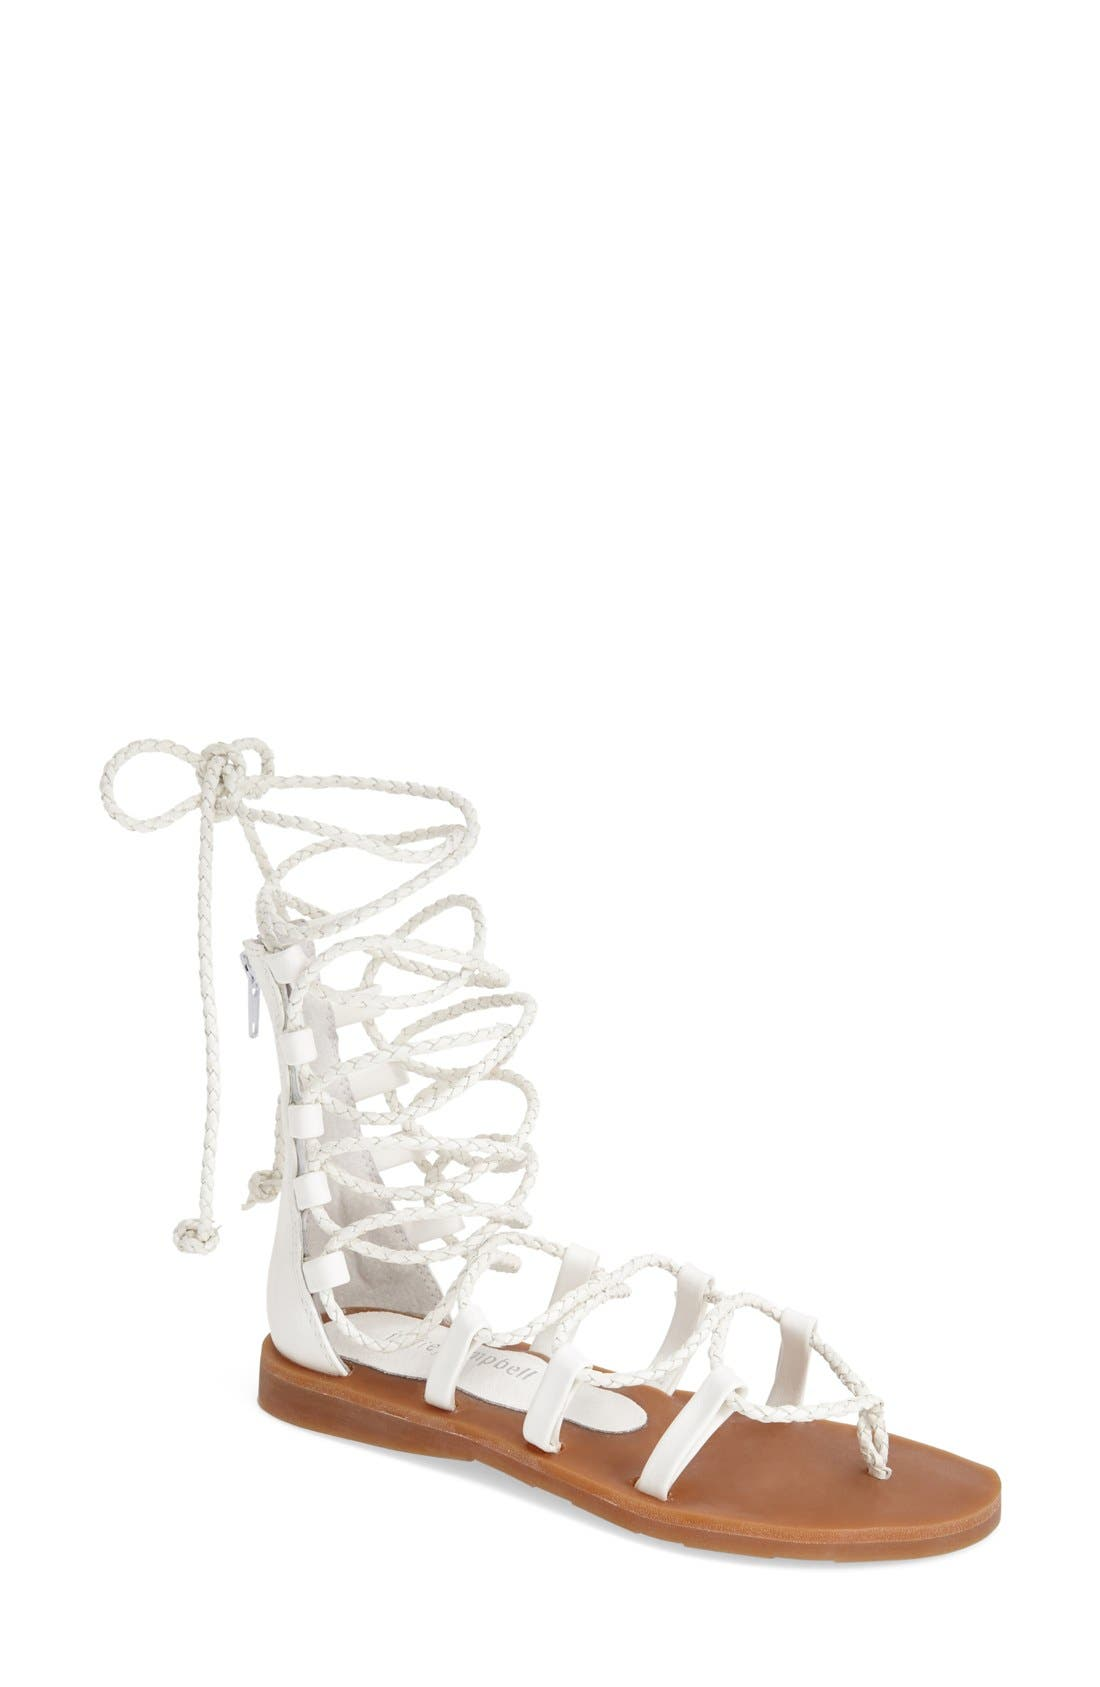 'Hola' Lace-Up Gladiator Sandal,                         Main,                         color, White